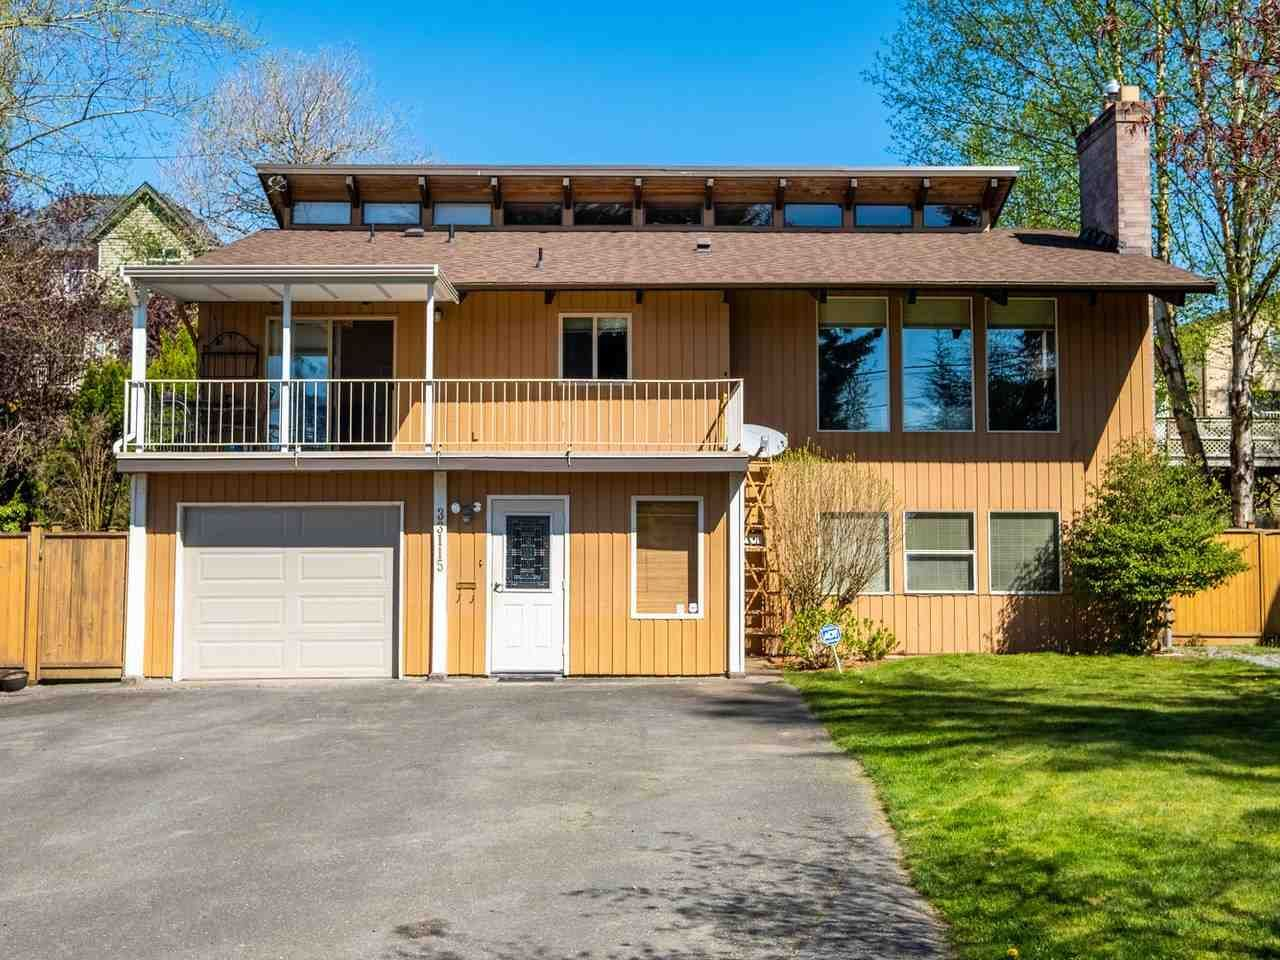 Main Photo: 33115 HILL Avenue in Mission: Mission BC House for sale : MLS®# R2568836